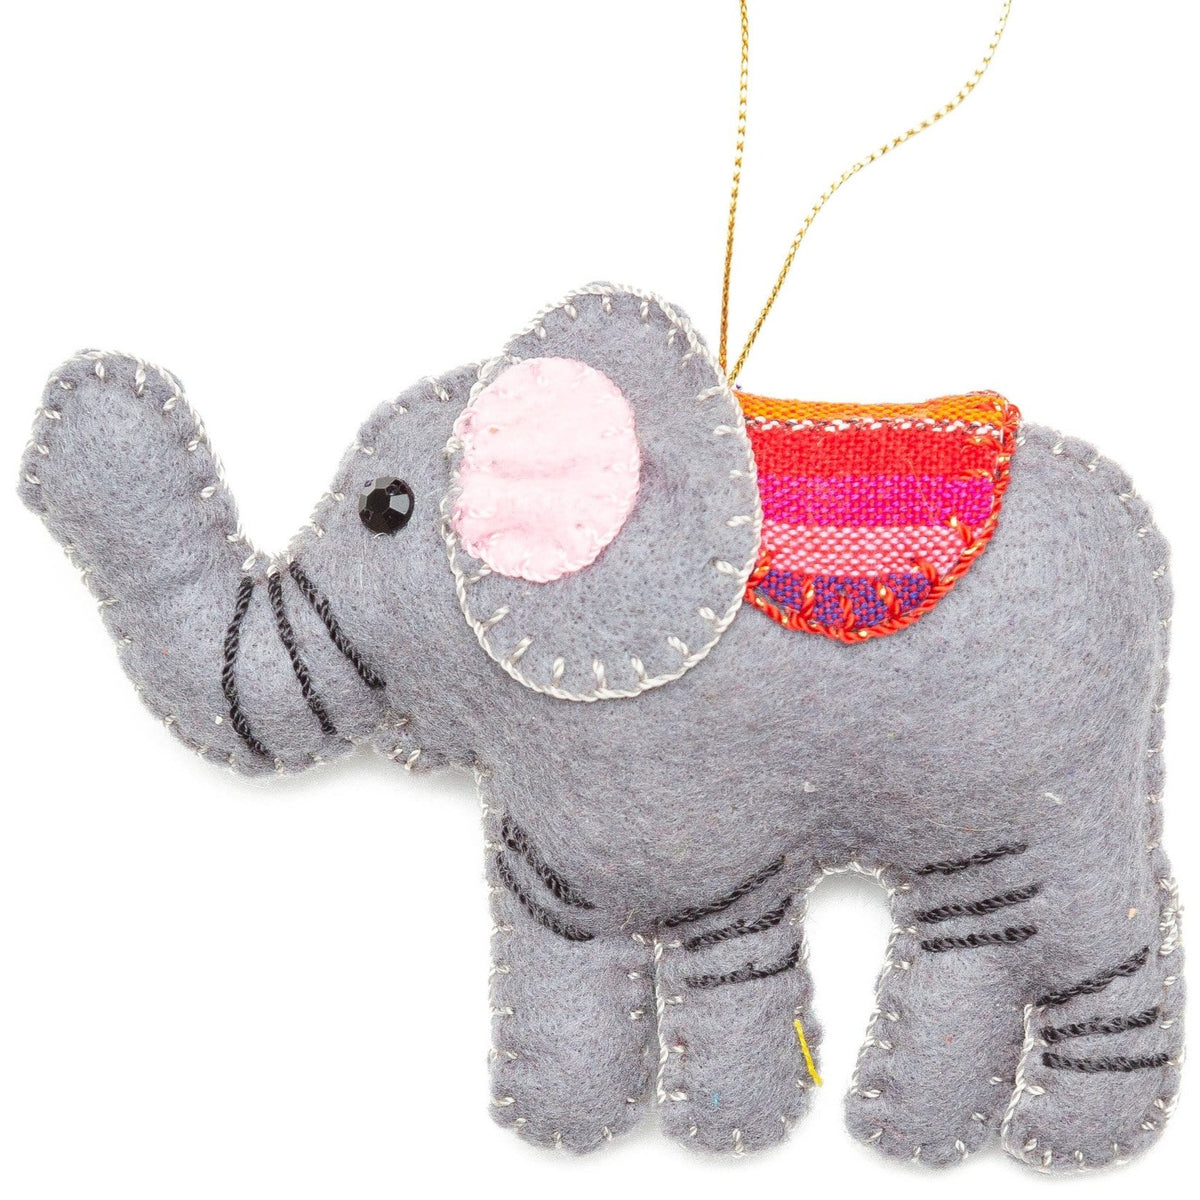 Felt Elephant Ornament